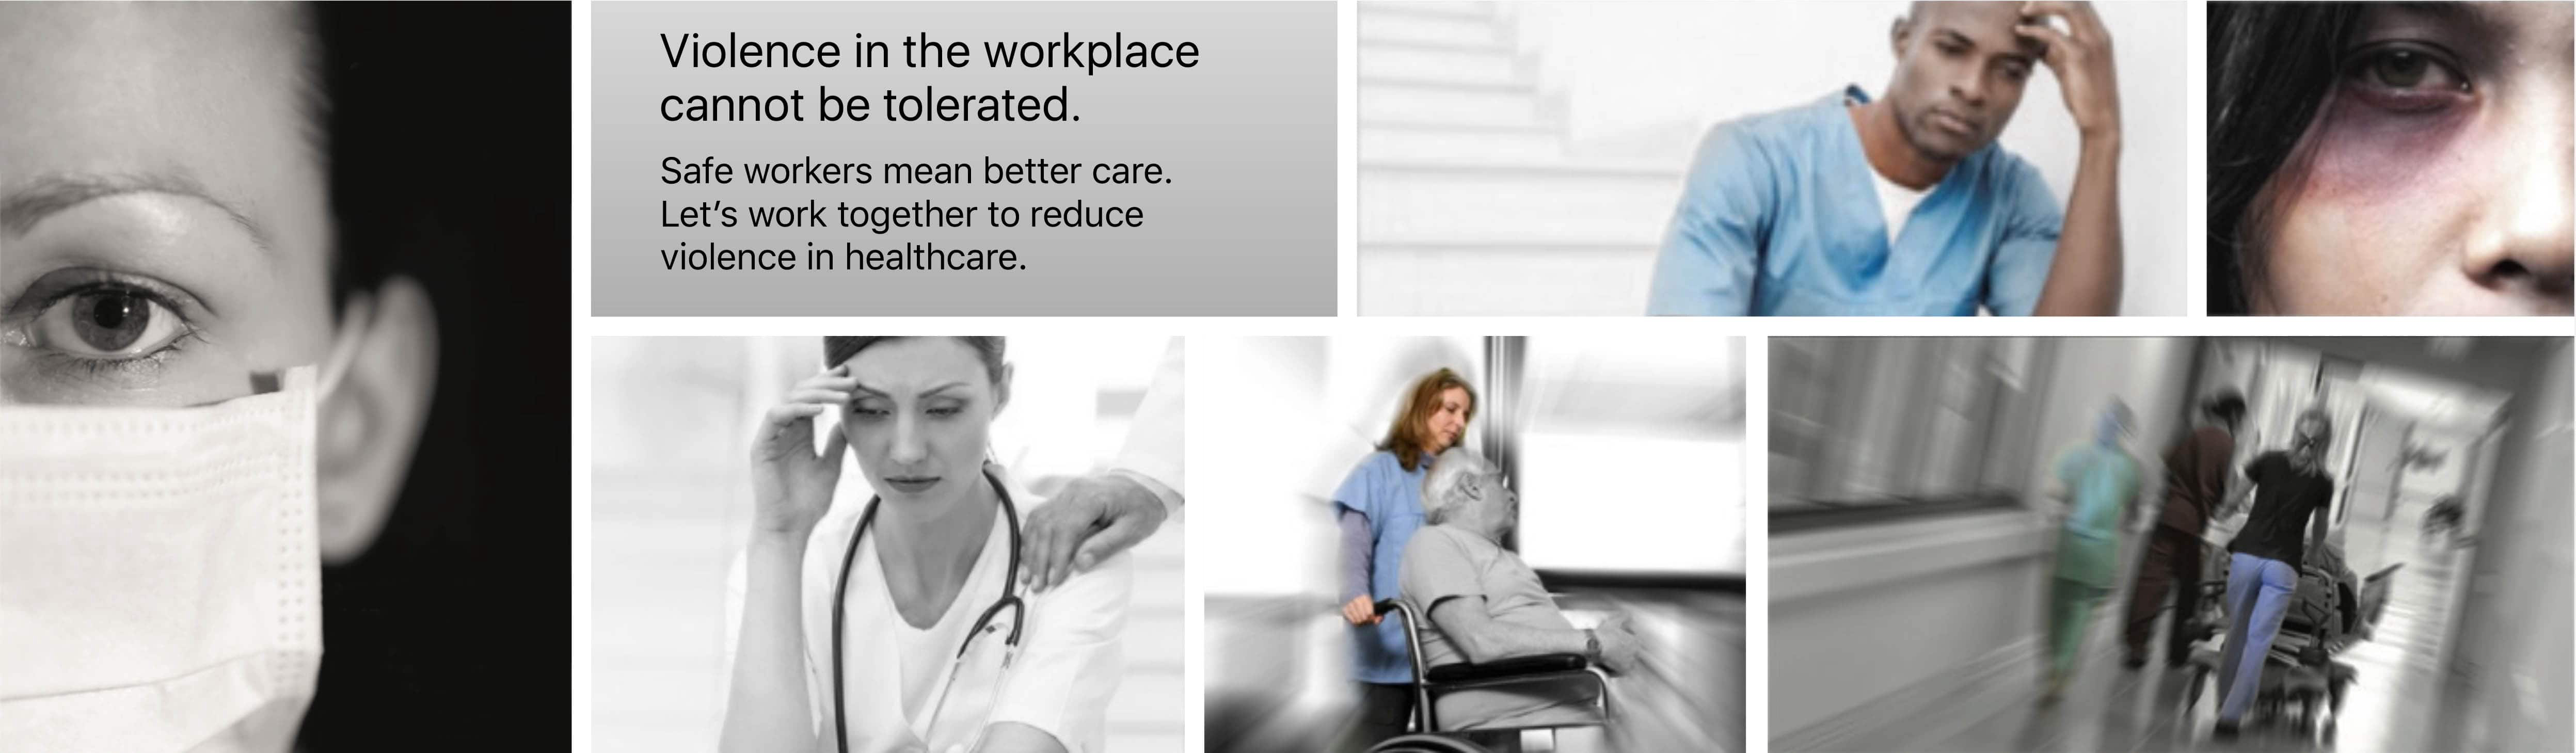 """Banner with the tagline """"Safe workers mean better care. Let's work together to reduce violence in healthcare""""."""